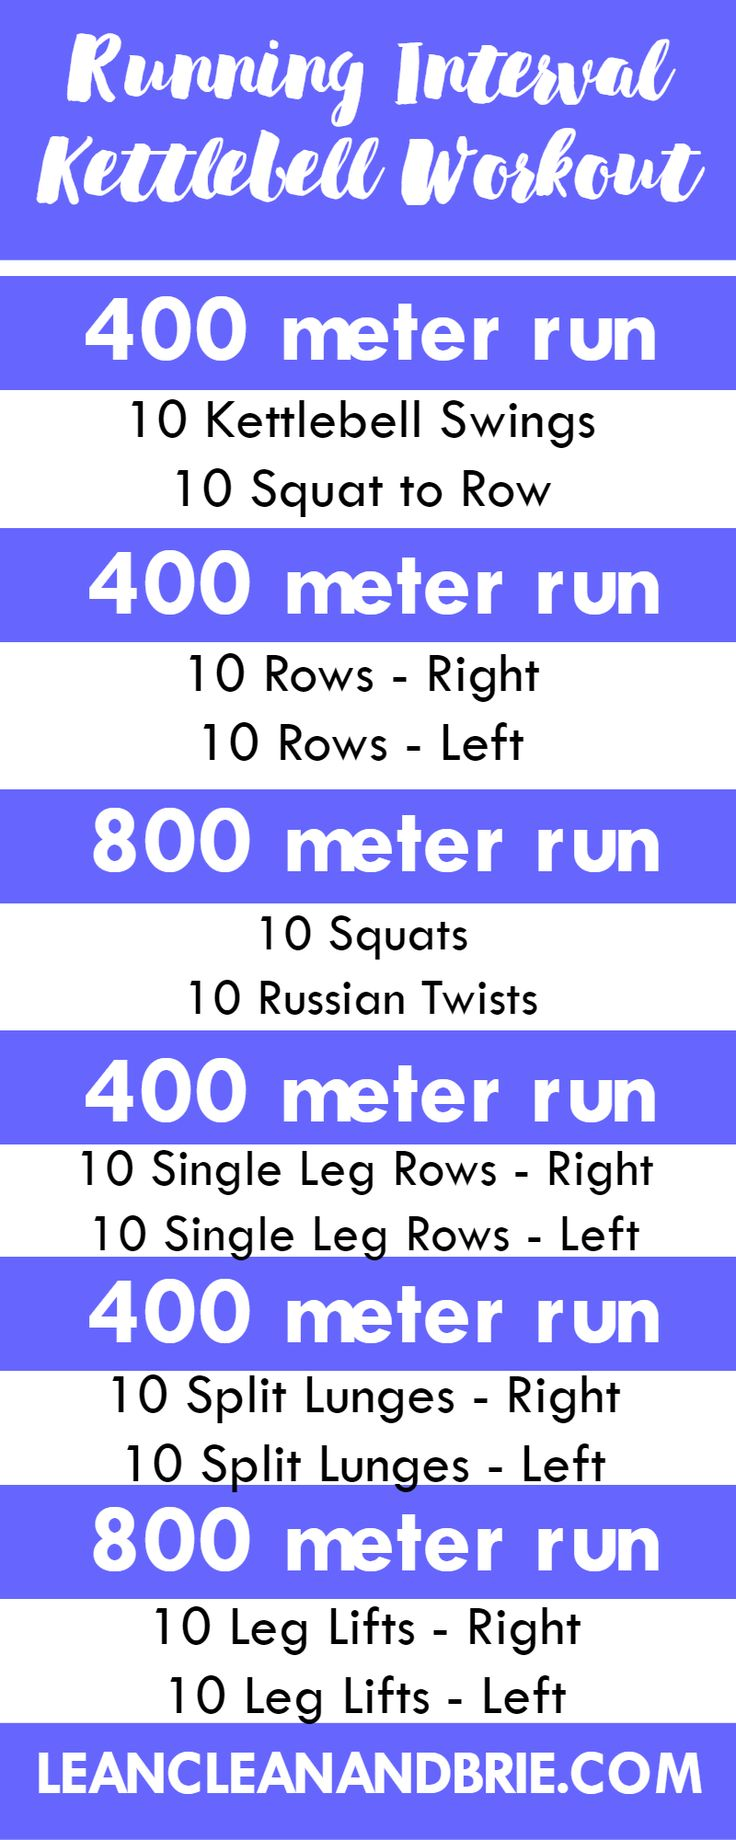 Running interval kettlebell workout runners cardio and